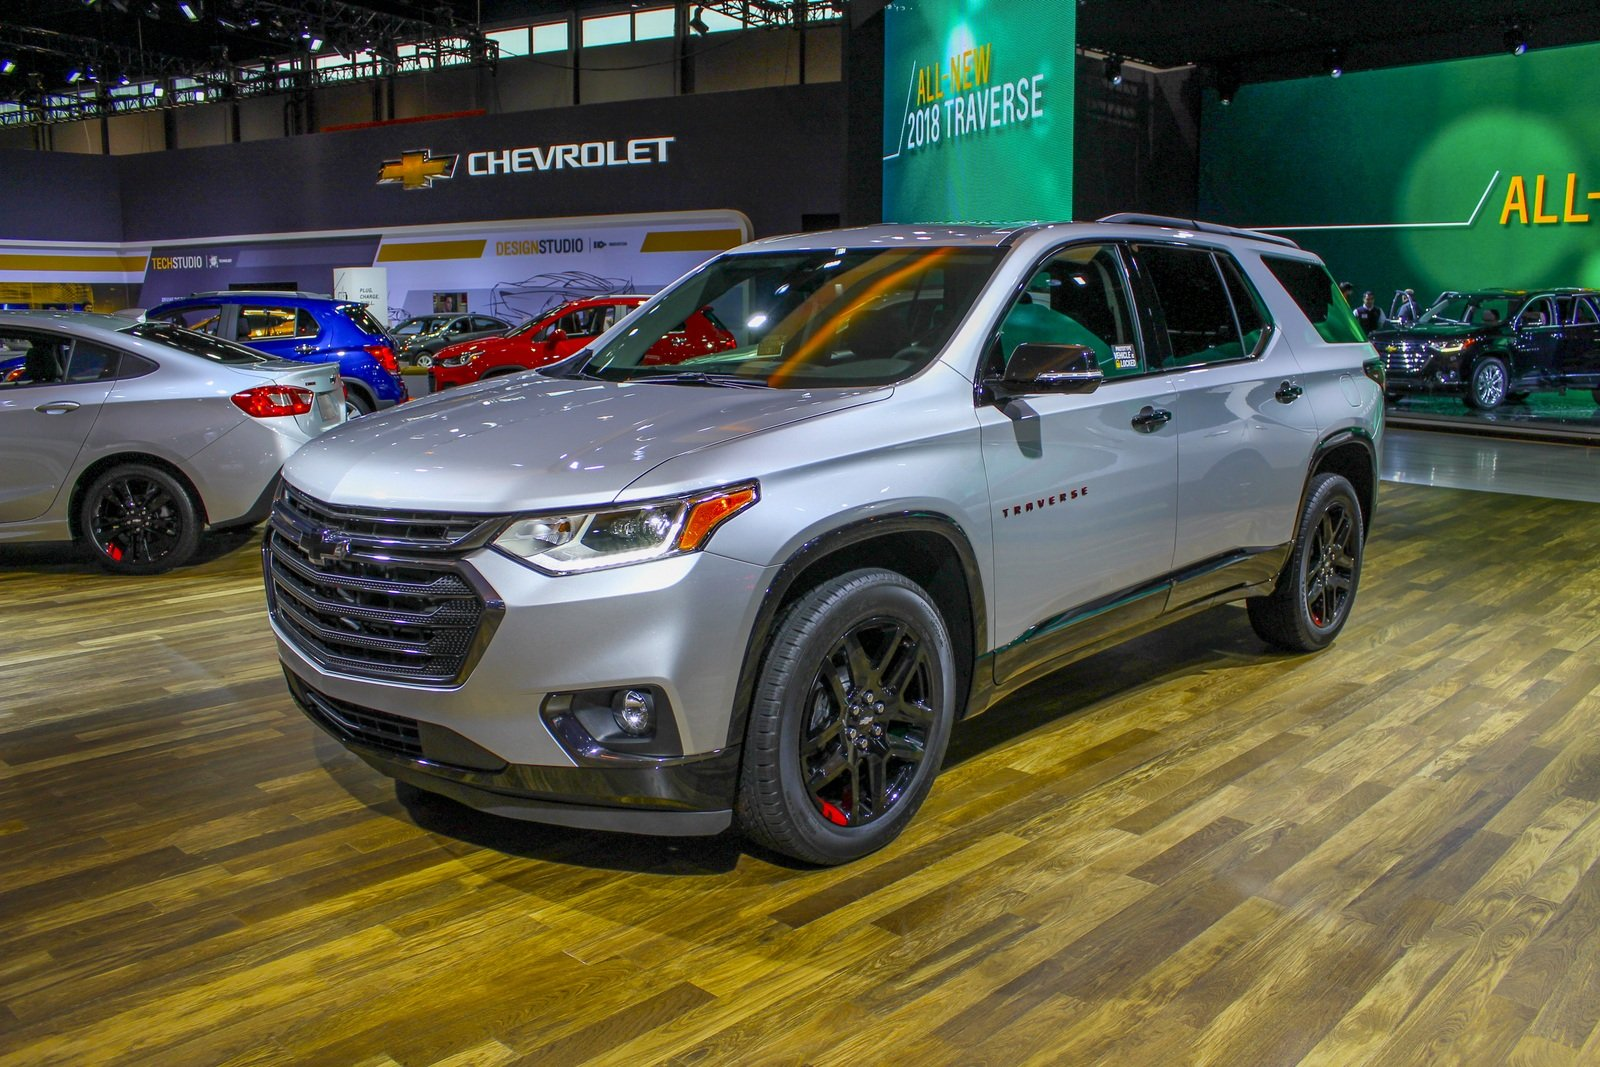 2017 chevrolet traverse redline edition picture 705338 car review top speed. Black Bedroom Furniture Sets. Home Design Ideas